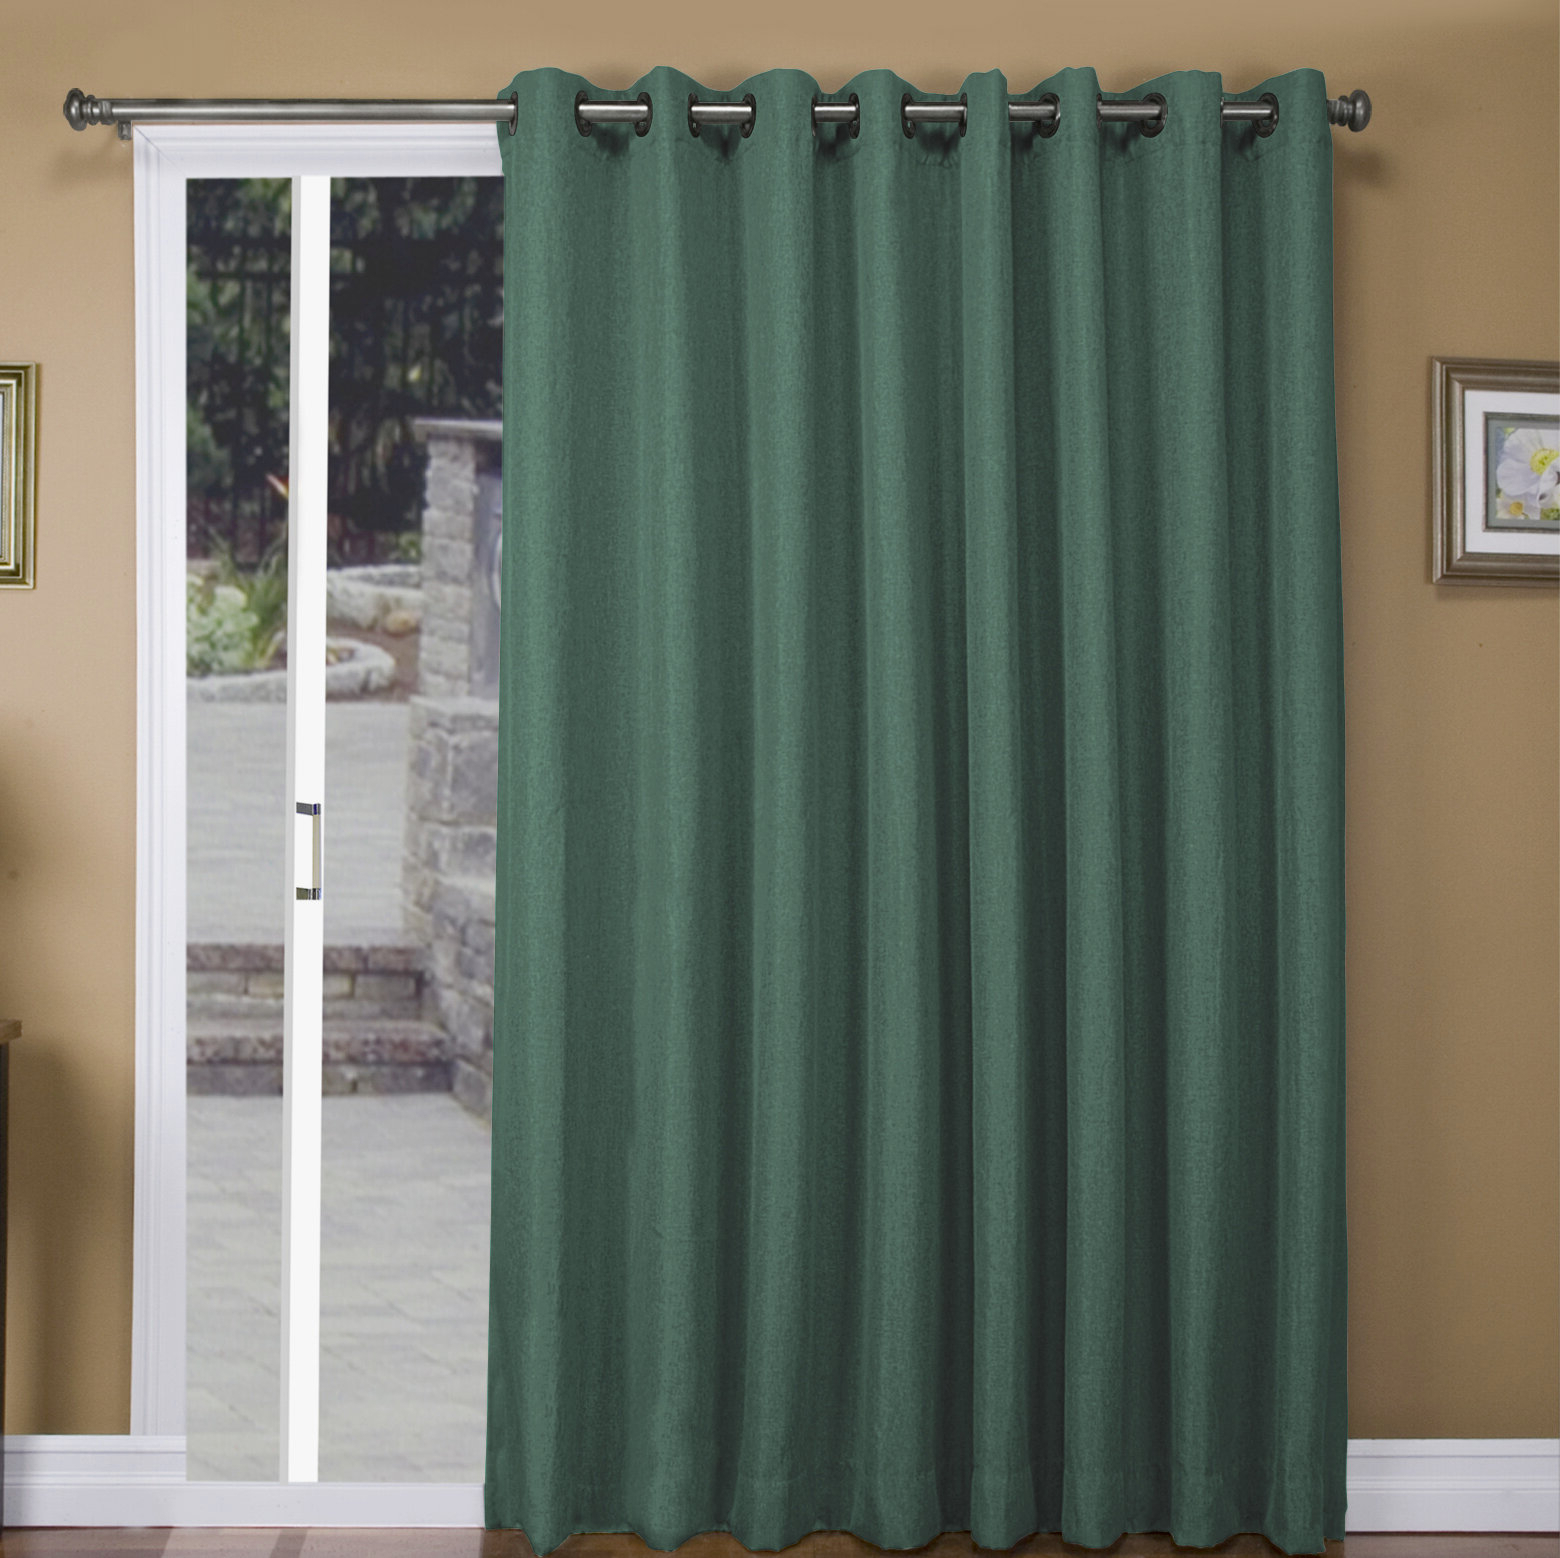 Popular Tacoma Patio Solid Blackout Thermal Grommet Single Curtain Panel Within Tacoma Double Blackout Grommet Curtain Panels (View 13 of 20)